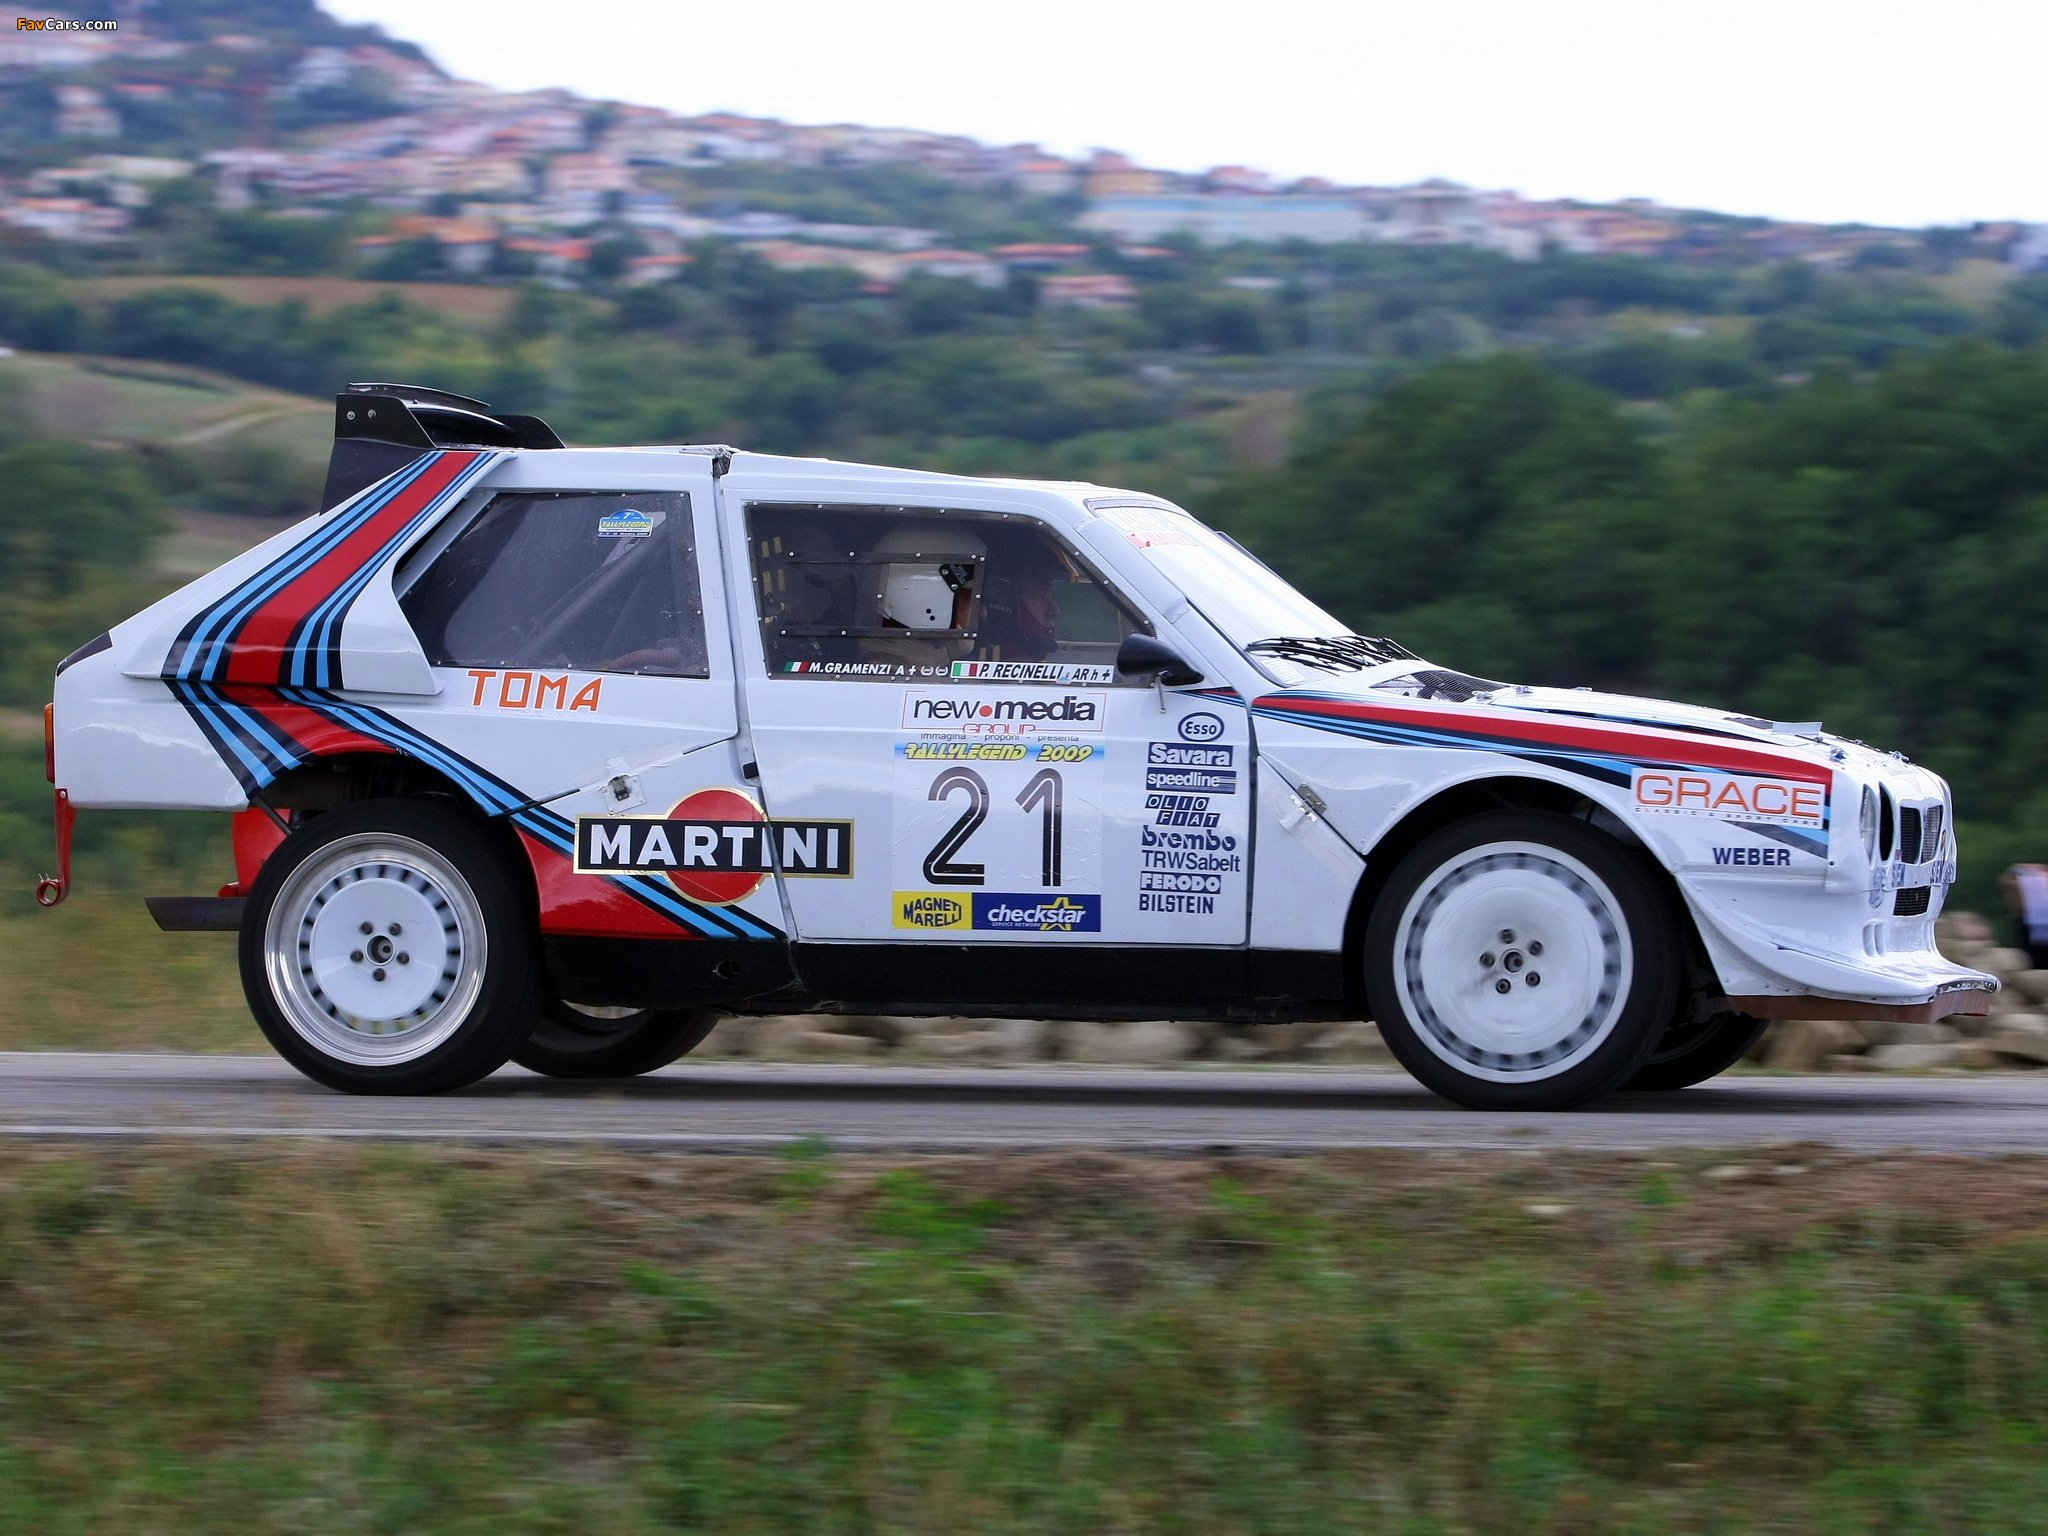 Lancia Racing Cars Picture Gallery and History - Lancia Racing ...